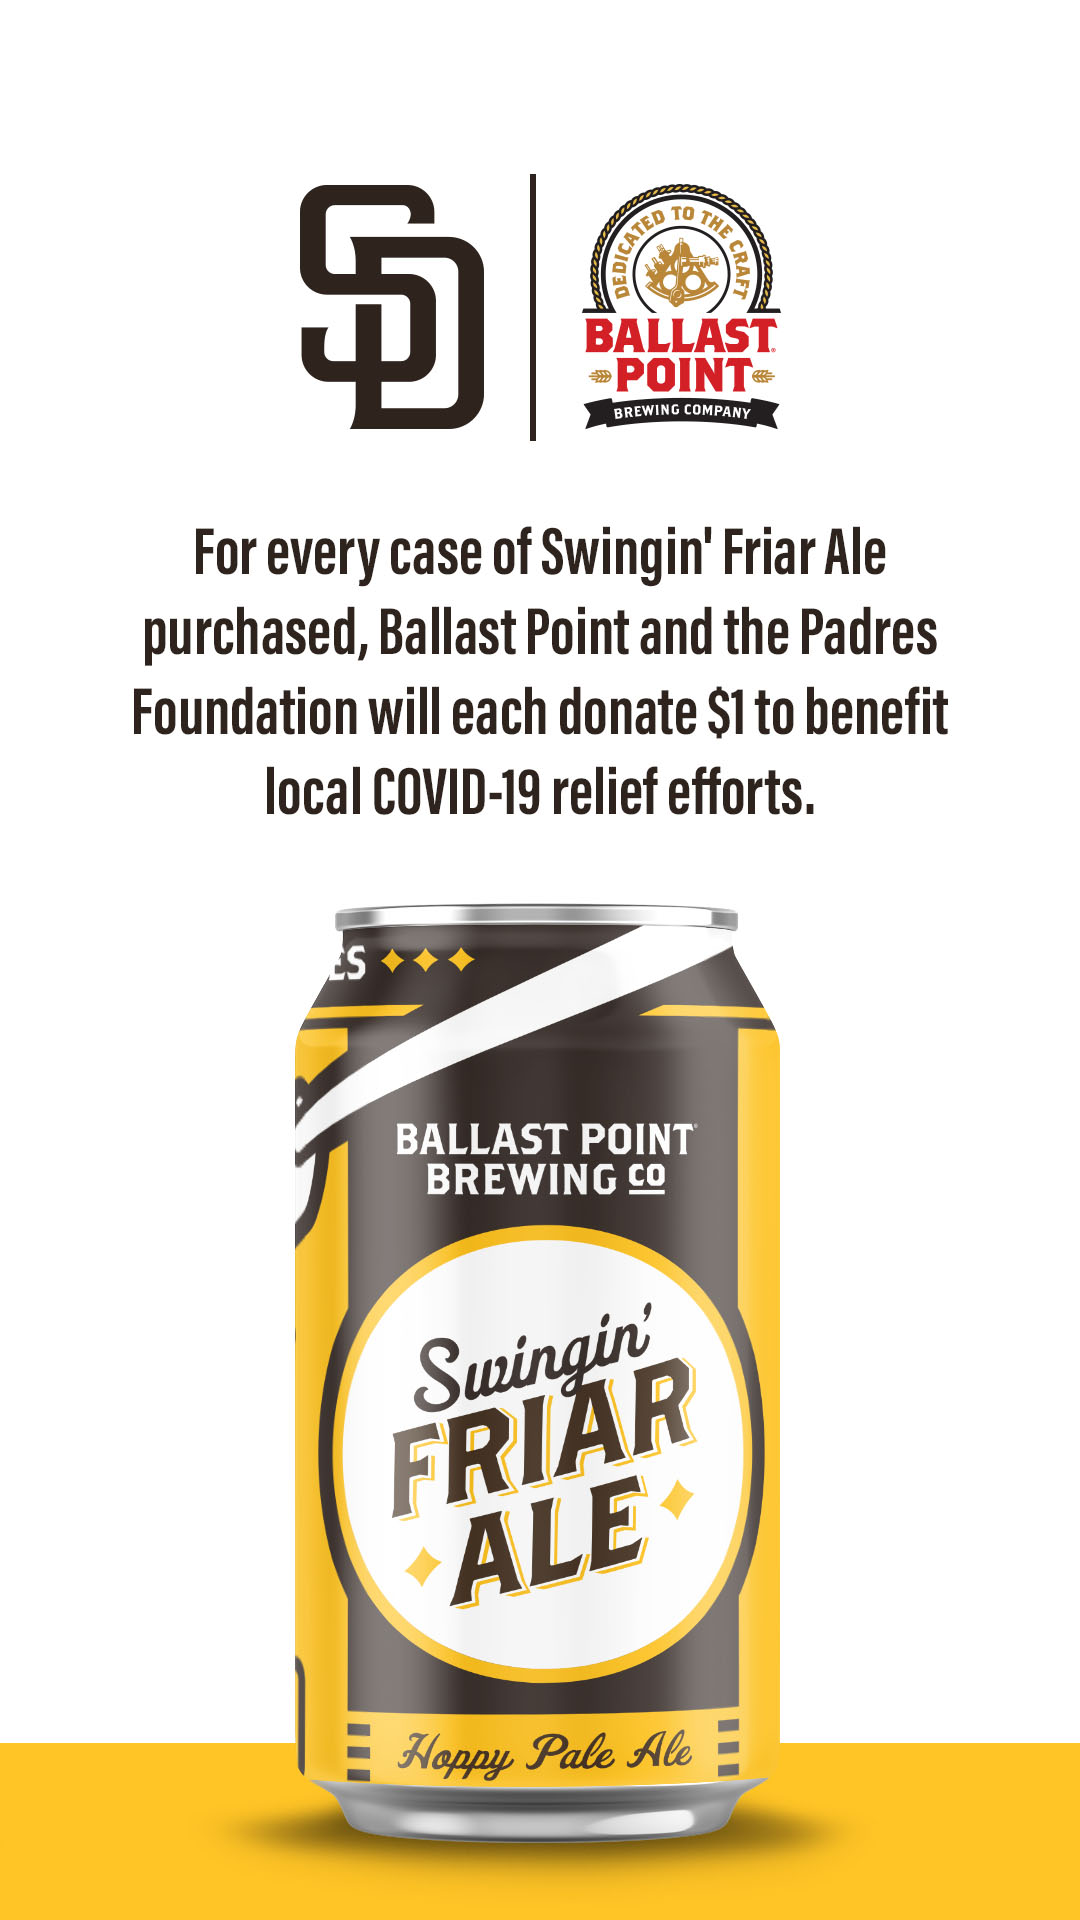 For every case of Swingin' Friar Ale purchased, Ballst Point and the Padres Foundation will each donate $1 to benefit local COVID-19 relief efforts.